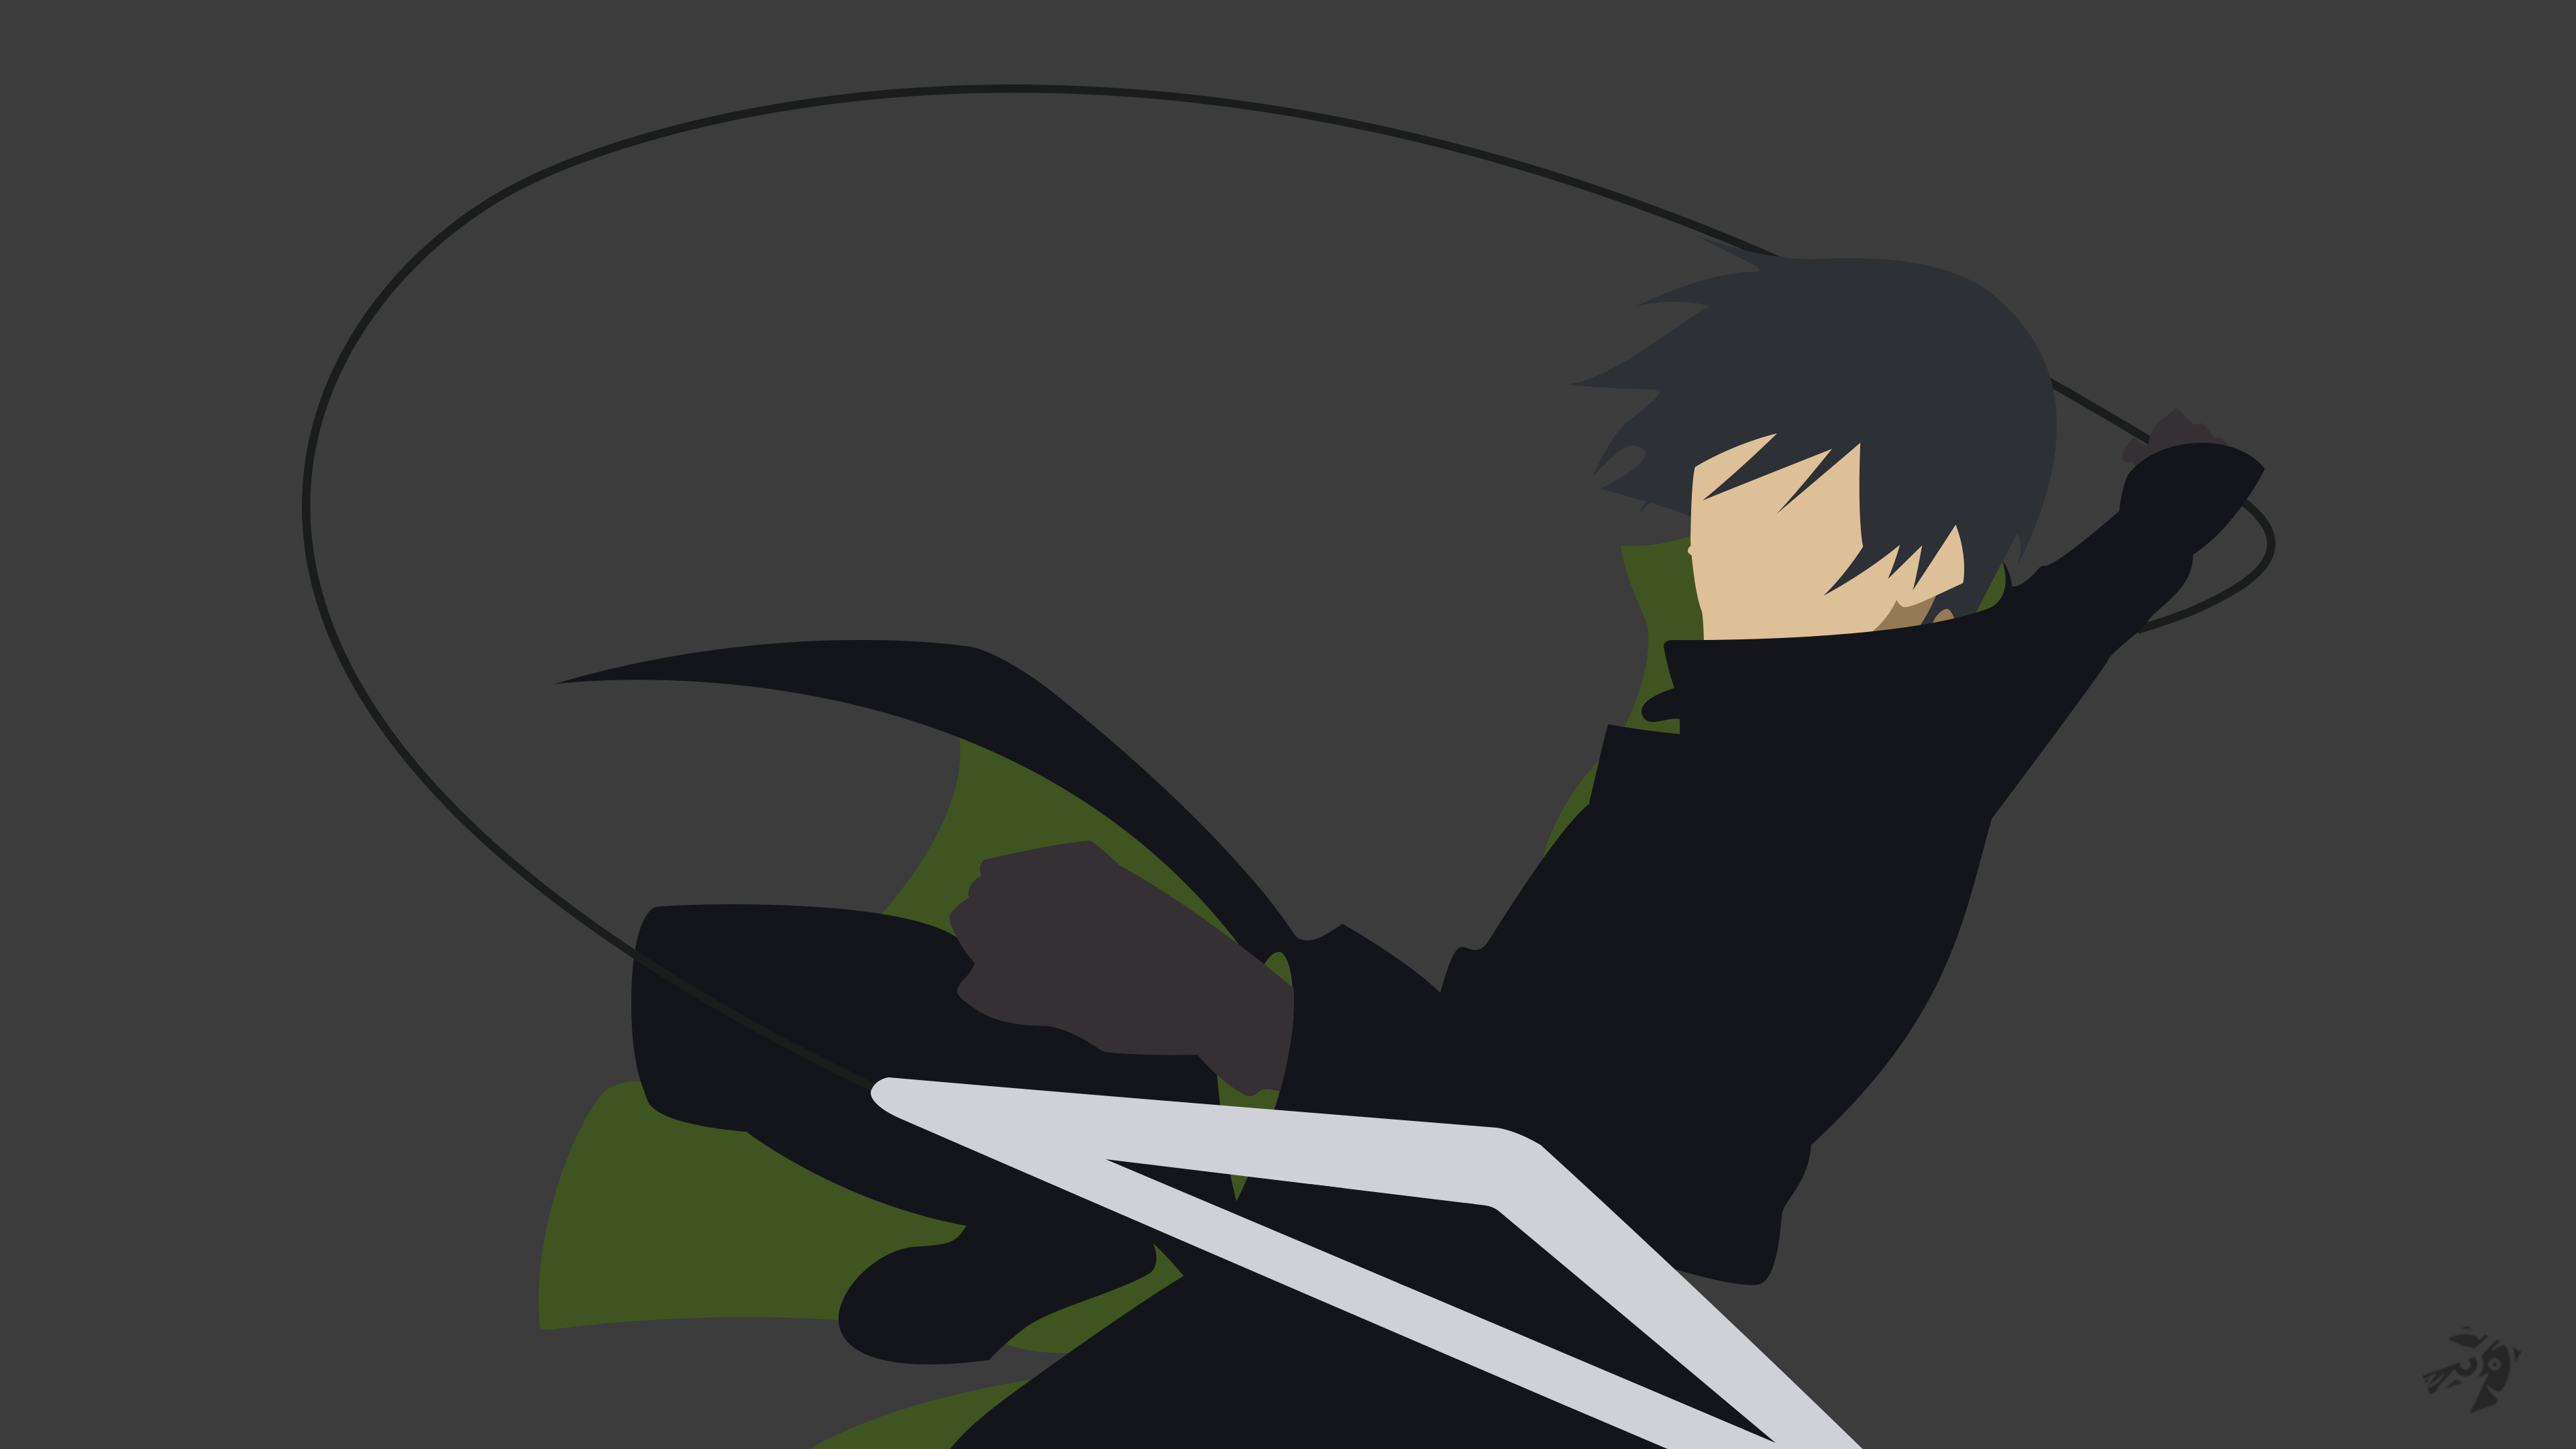 Hei Darker Than Black Minimalist Anime Wallpaper By Lucifer012